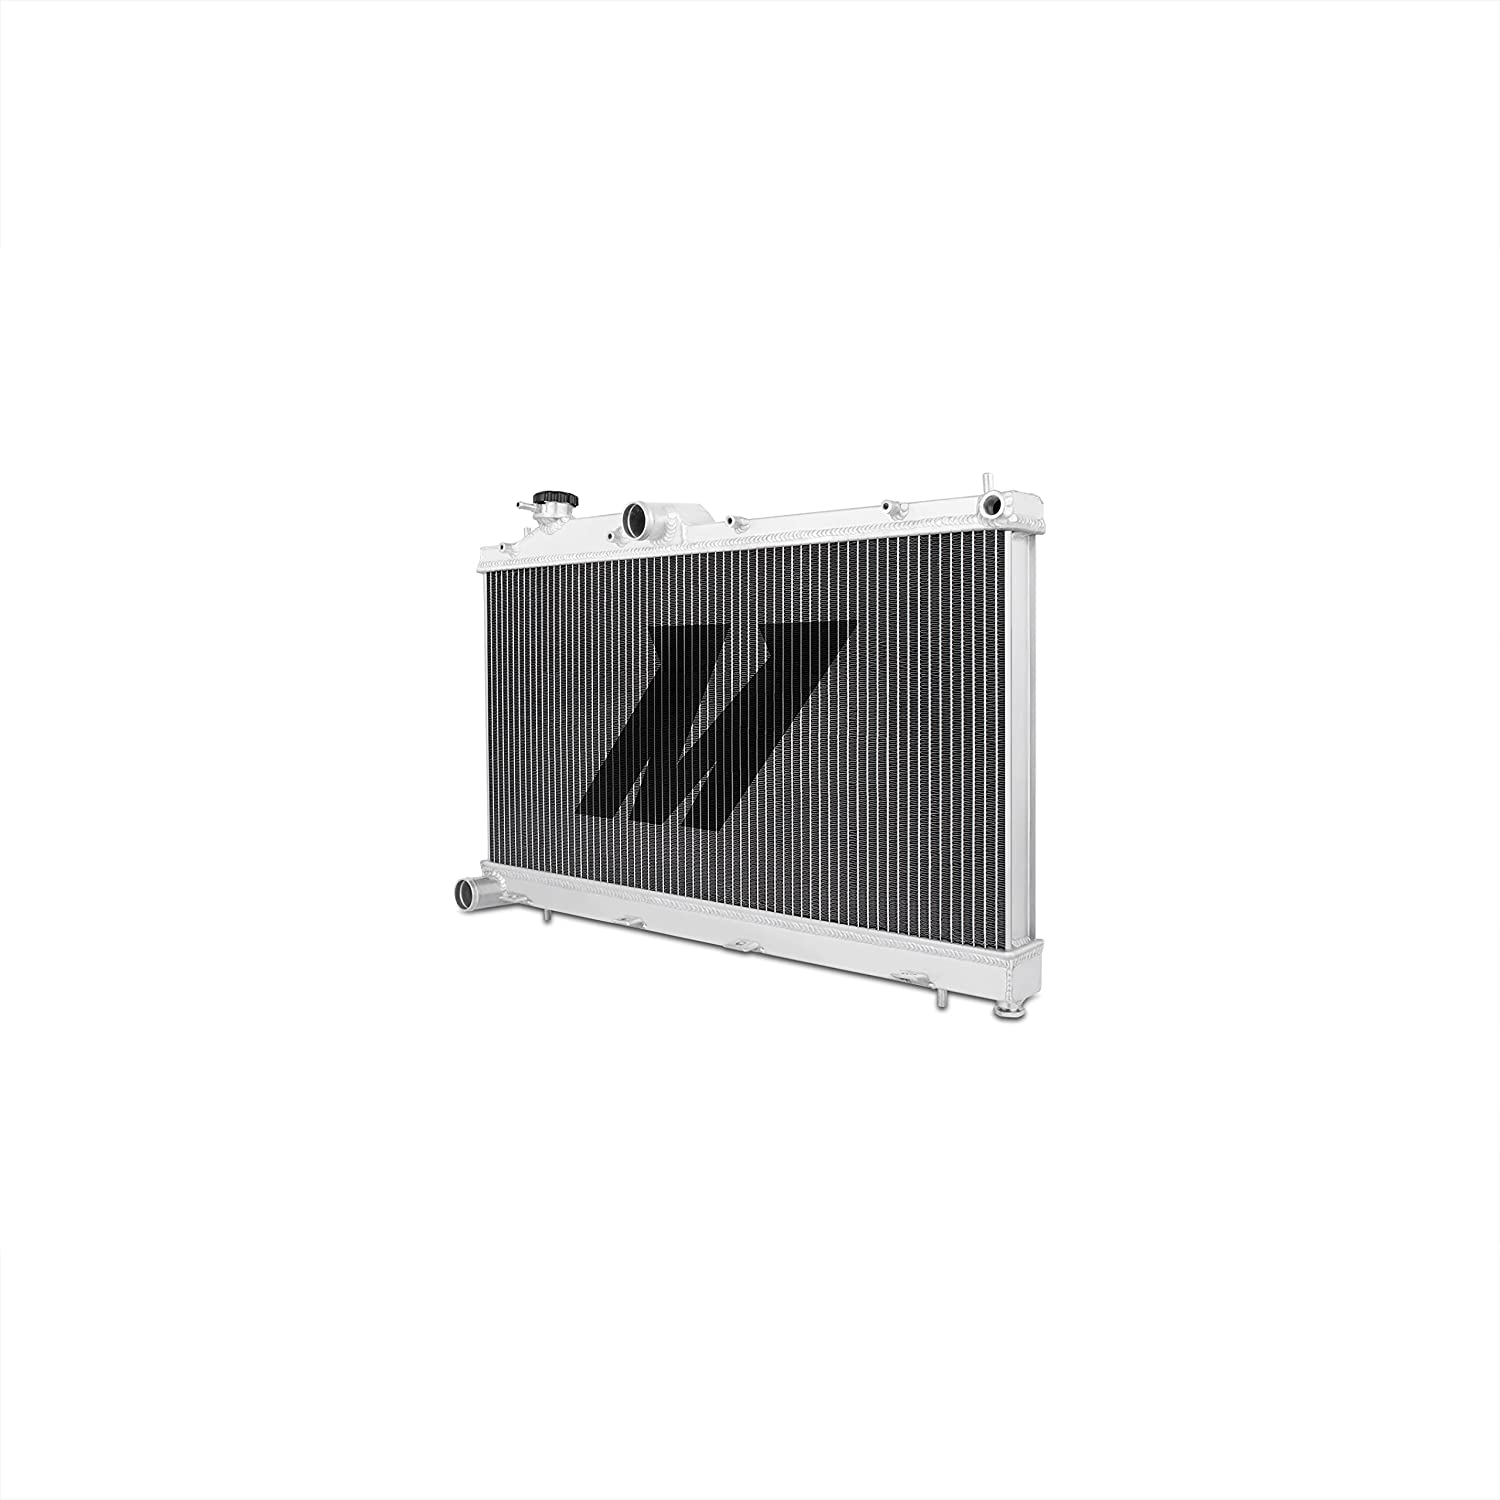 Mishimoto MMRAD-STI-08X Performance Aluminum Radiator with Manual Transmission for Subaru WRX and STI 3 Row